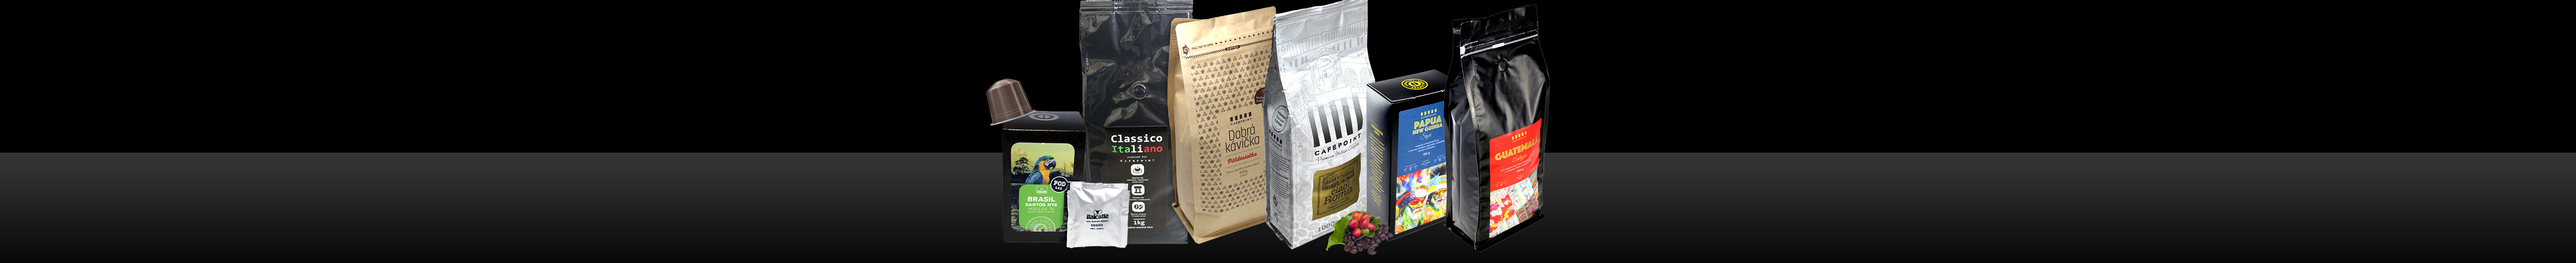 Cafepoint Brand